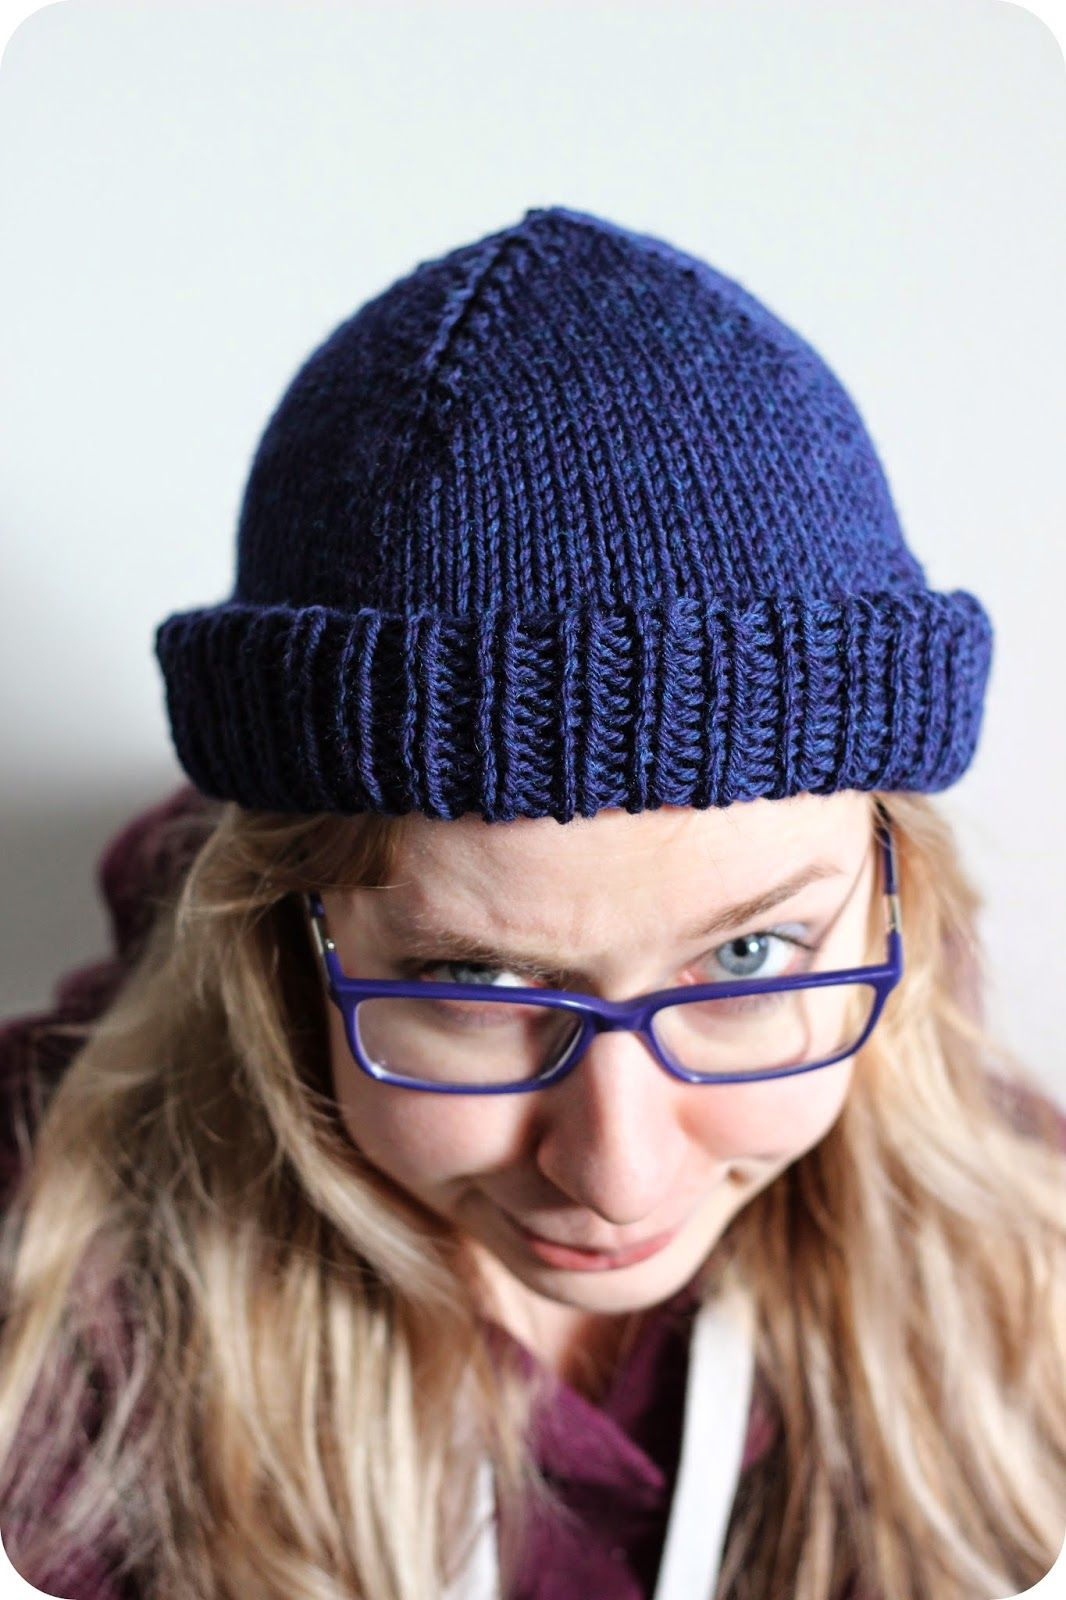 Thrifter beanie by Woolly Wormhead